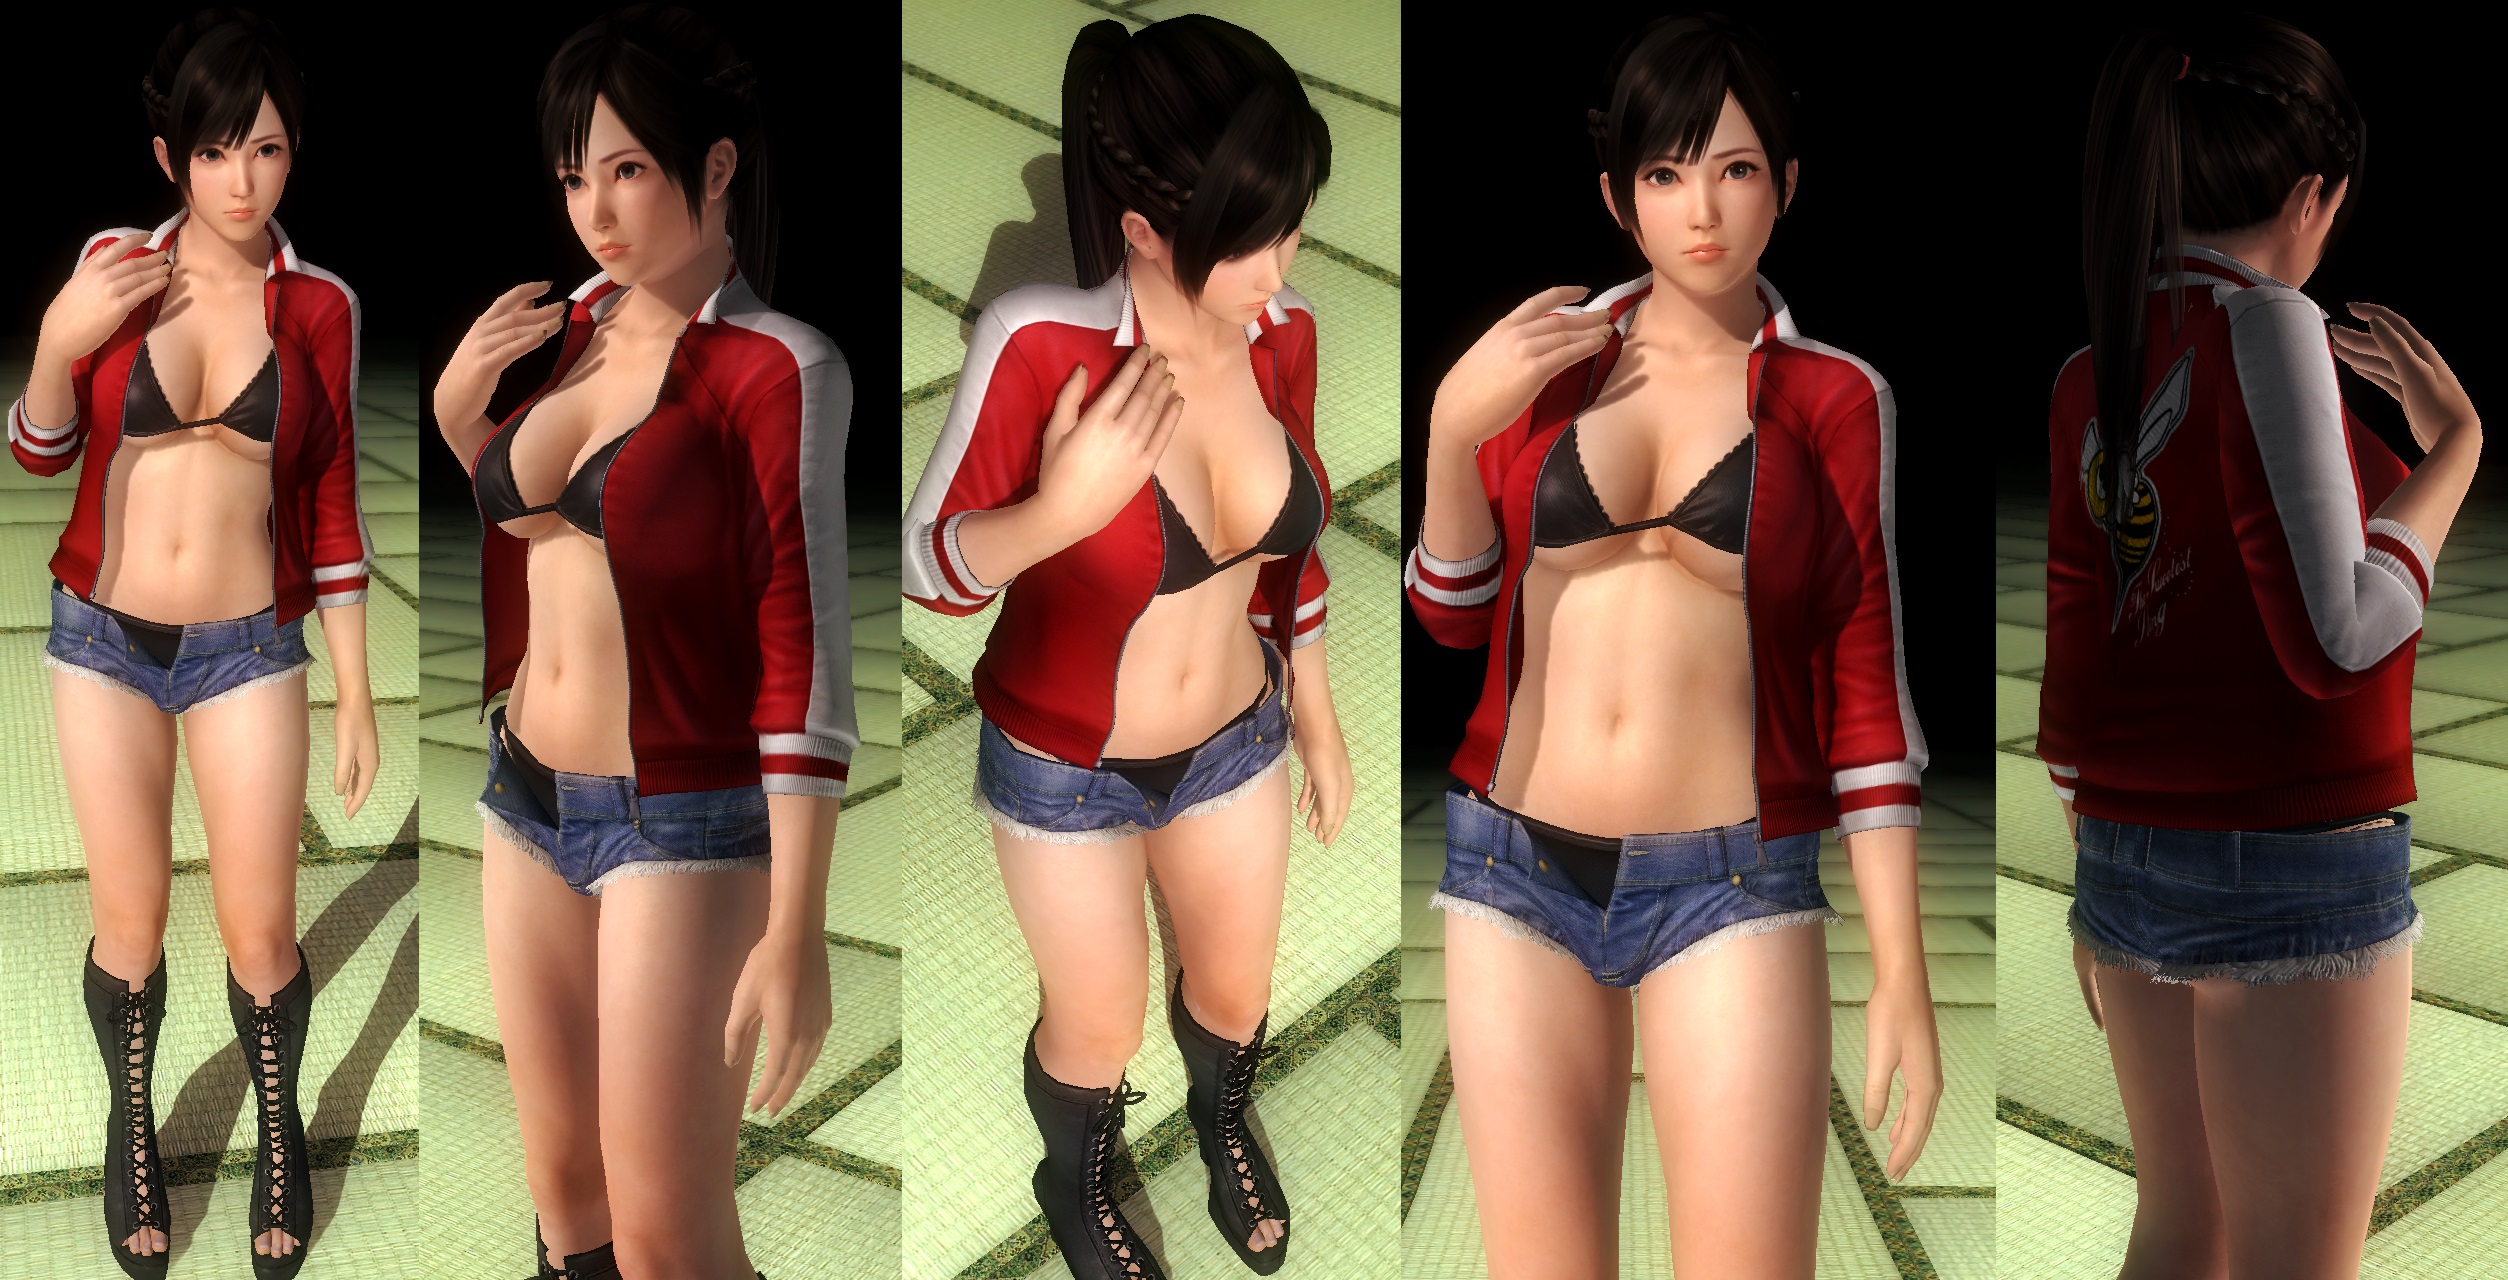 Kokoro jacket denim shorts by funnybunny666